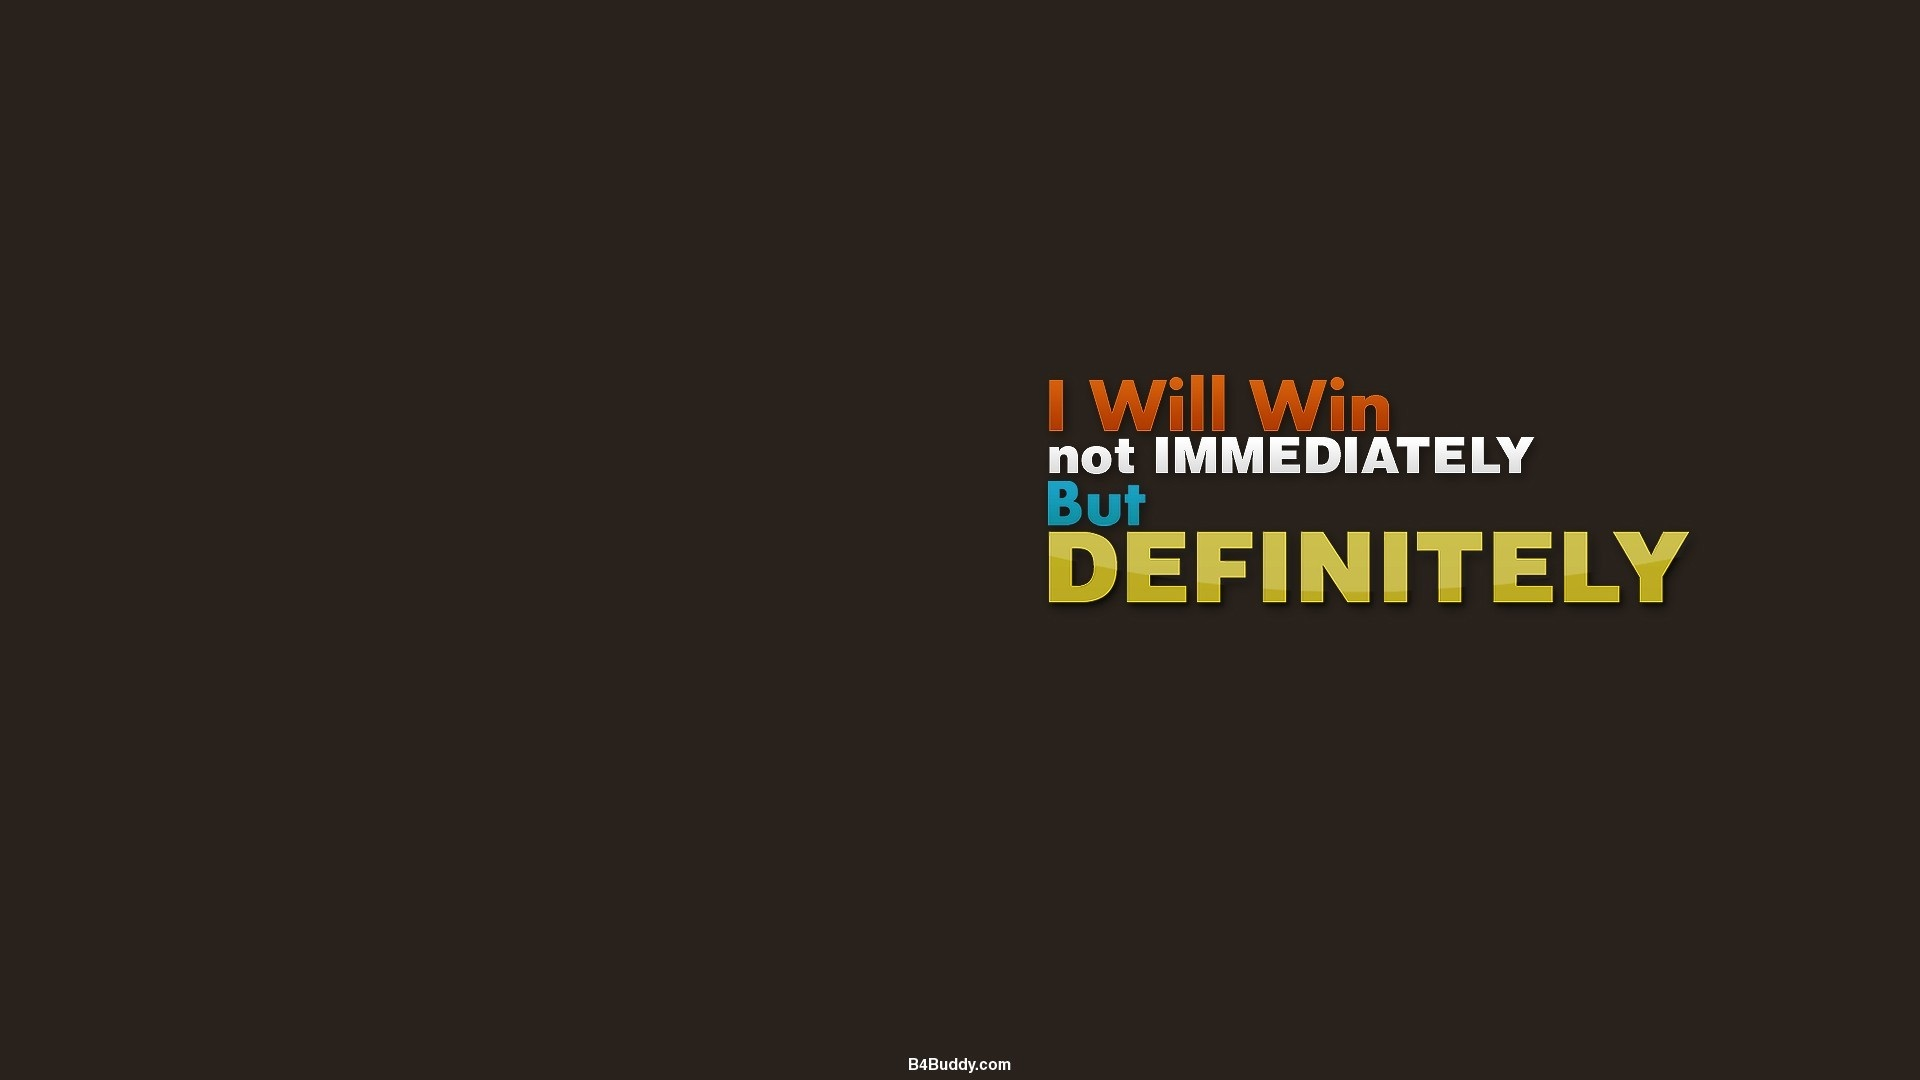 Nike Motivational Quotes Wallpaper Quote Pictures 1920x1080